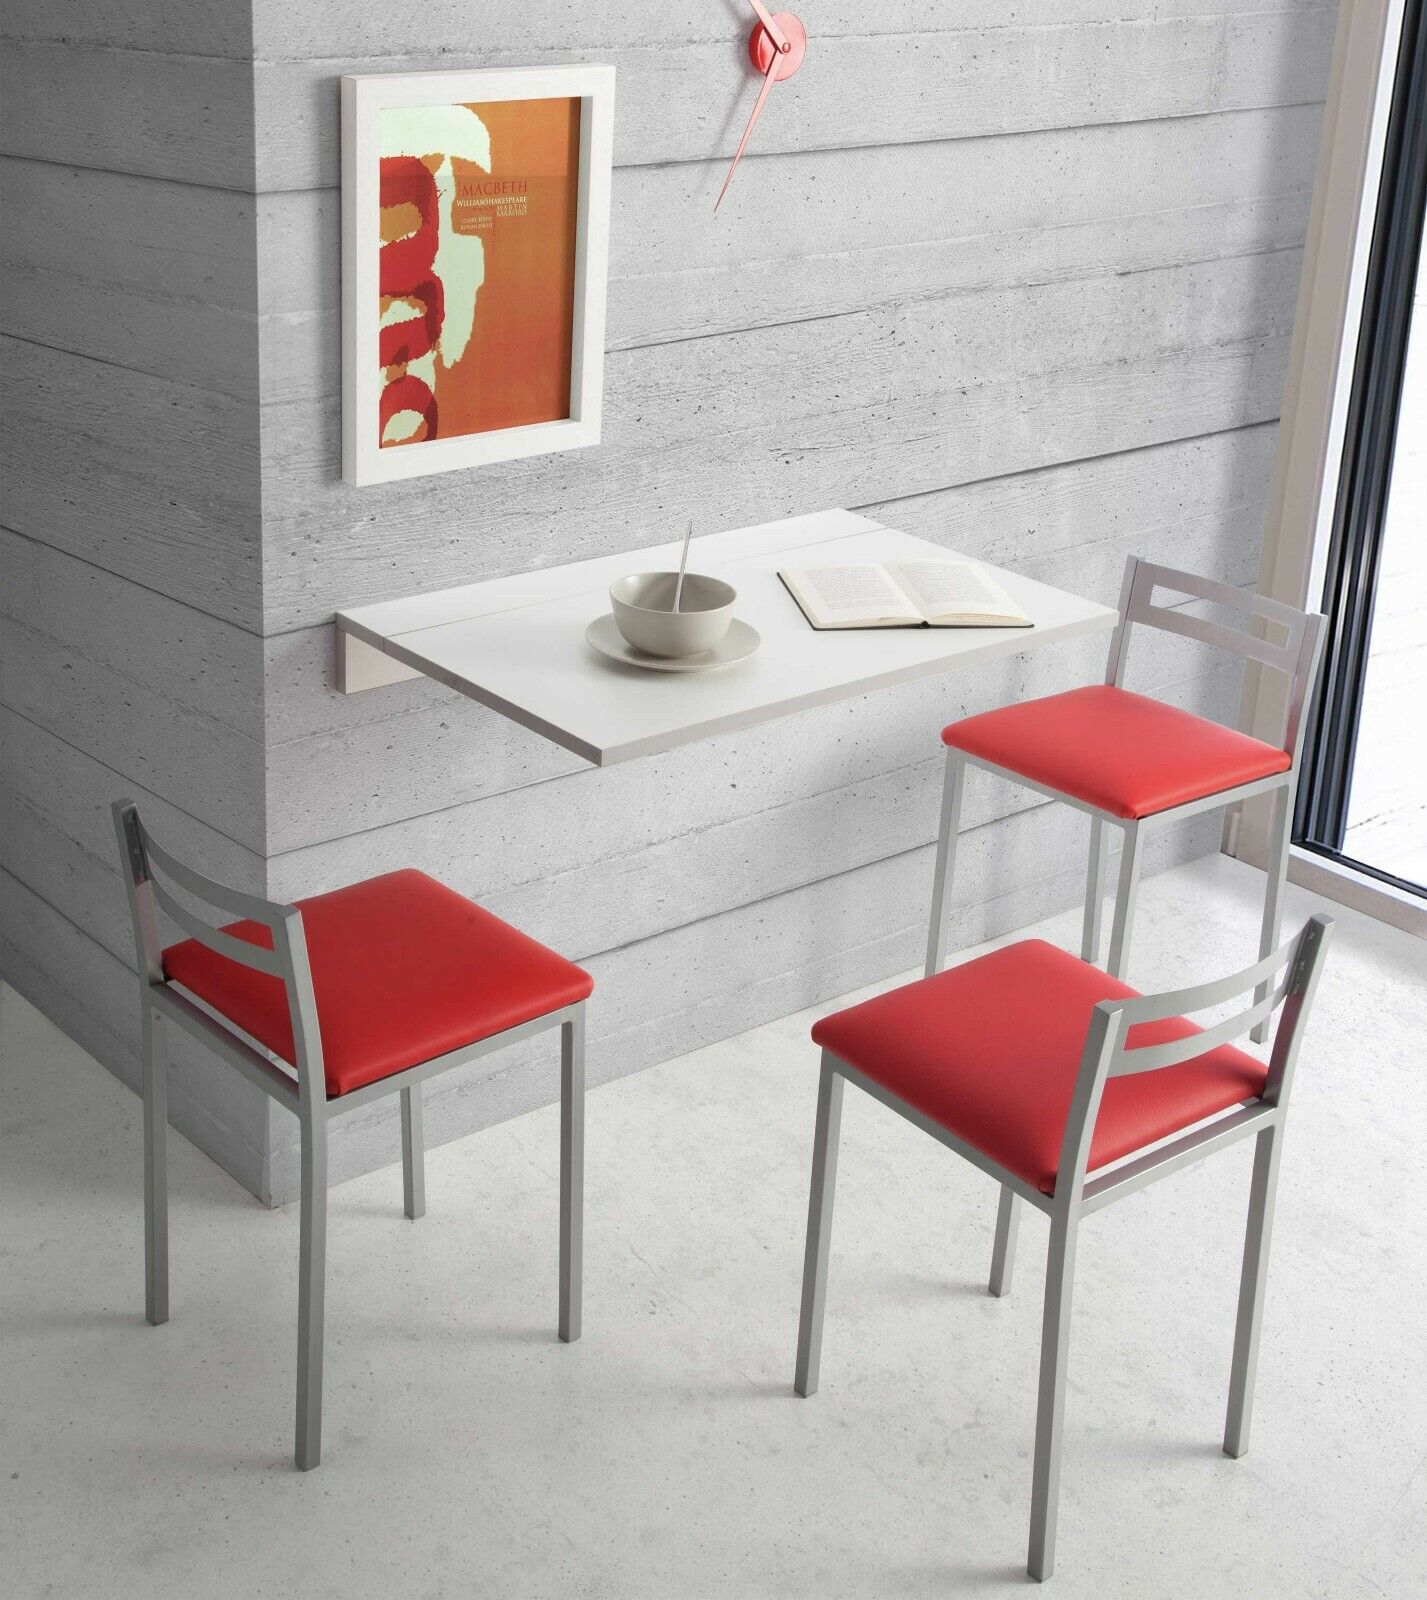 Detalles de Mesa cocina plegable color blanco Vera moderno abatible  funcional pared 80x10-50